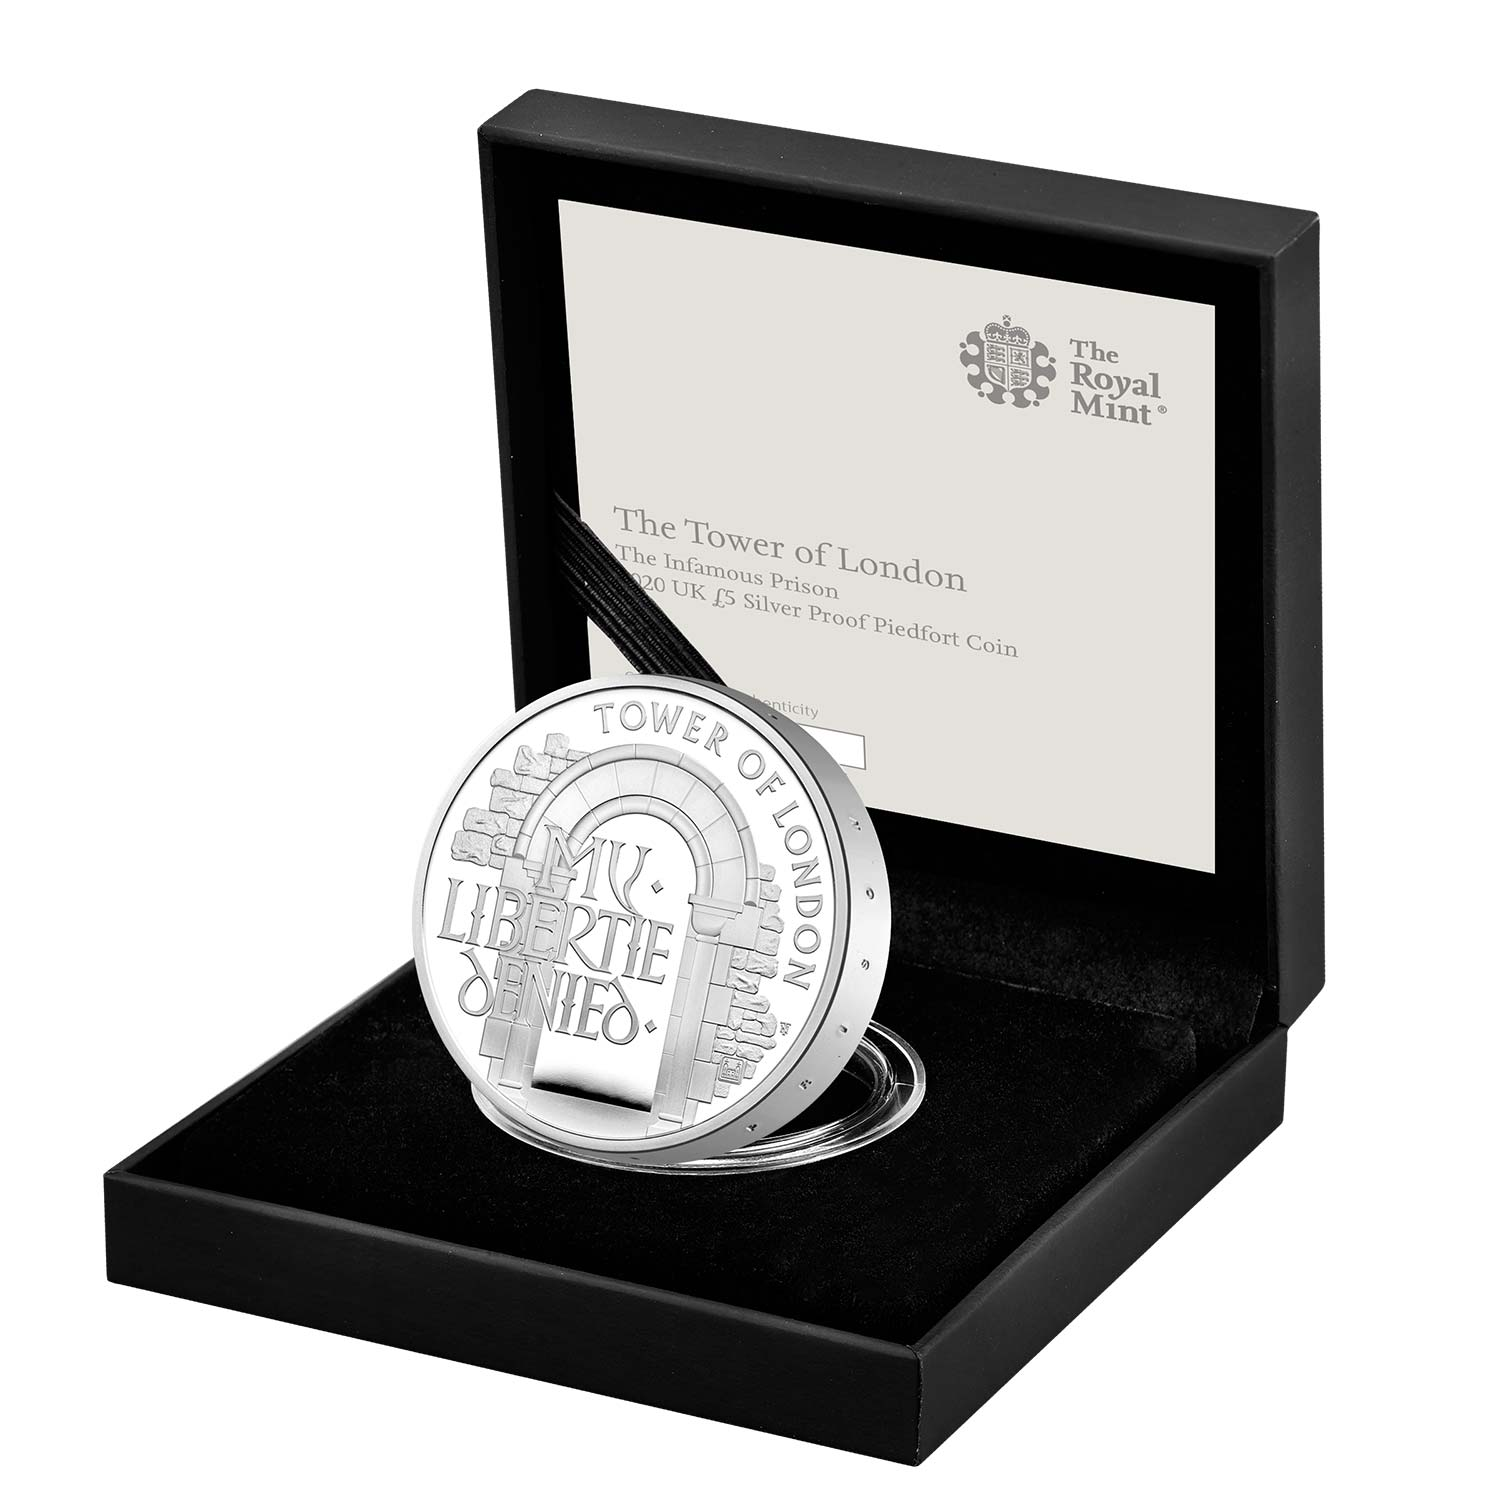 The Infamous Prison 2020 UK £5 Silver Proof Piedfort Coin